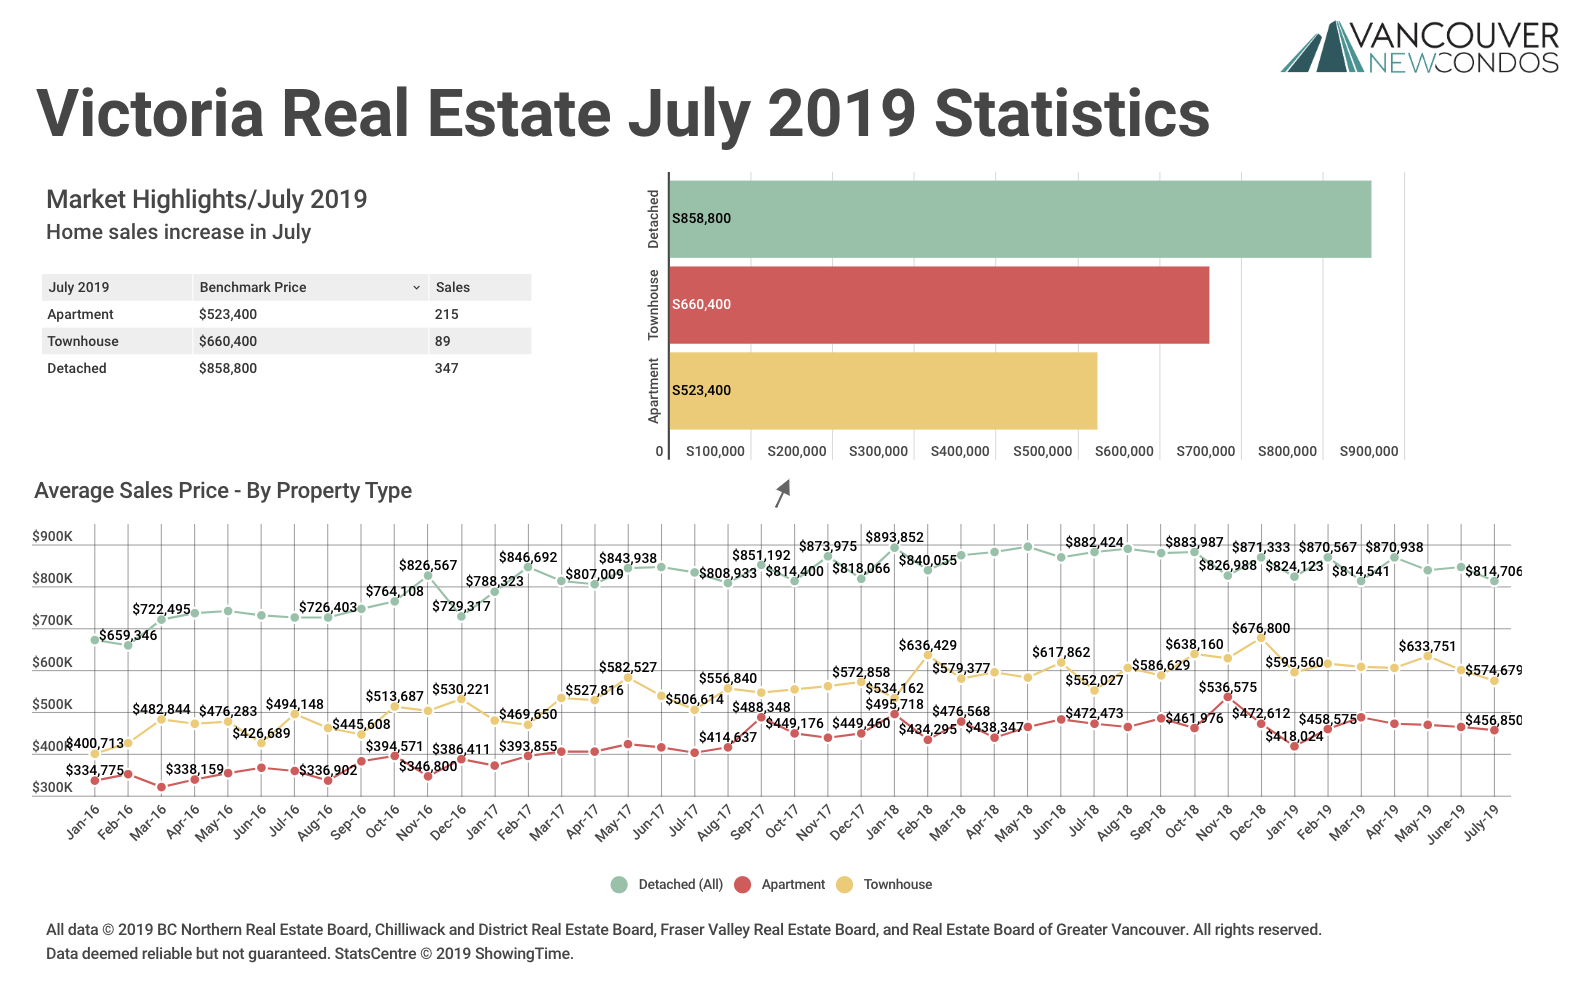 Victoria Real Estate Board July 2019 Statistics